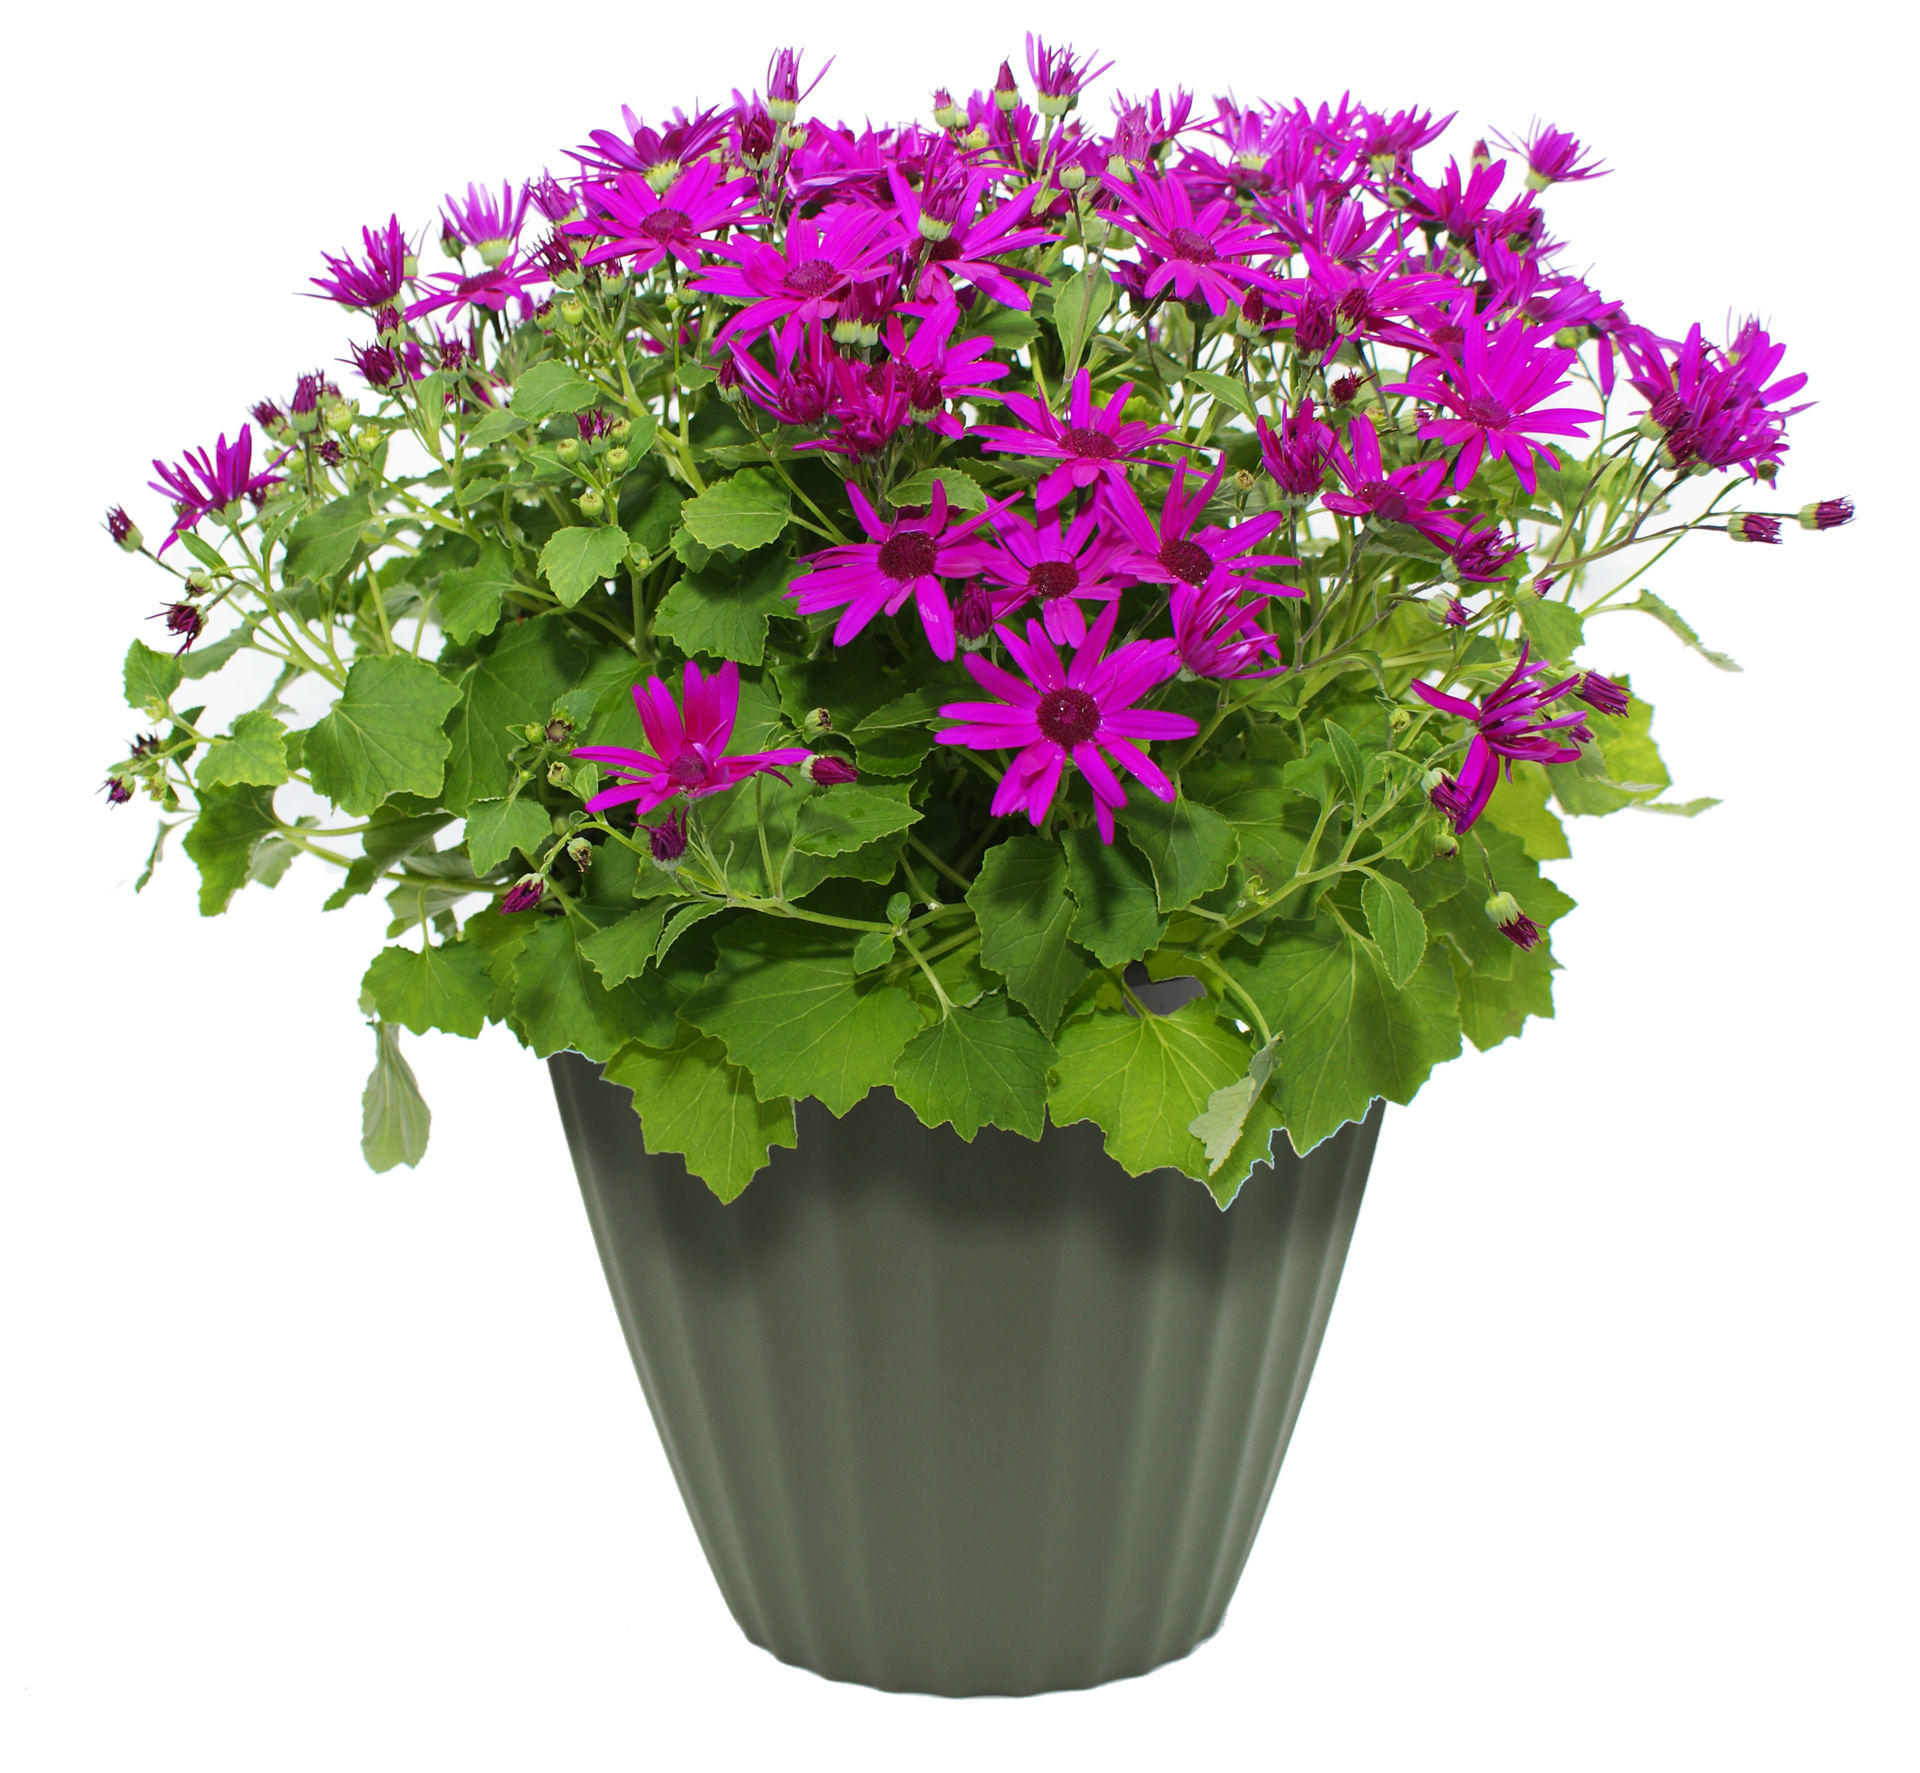 Flower Pot PNG Transparent Flower Pot.PNG Images..